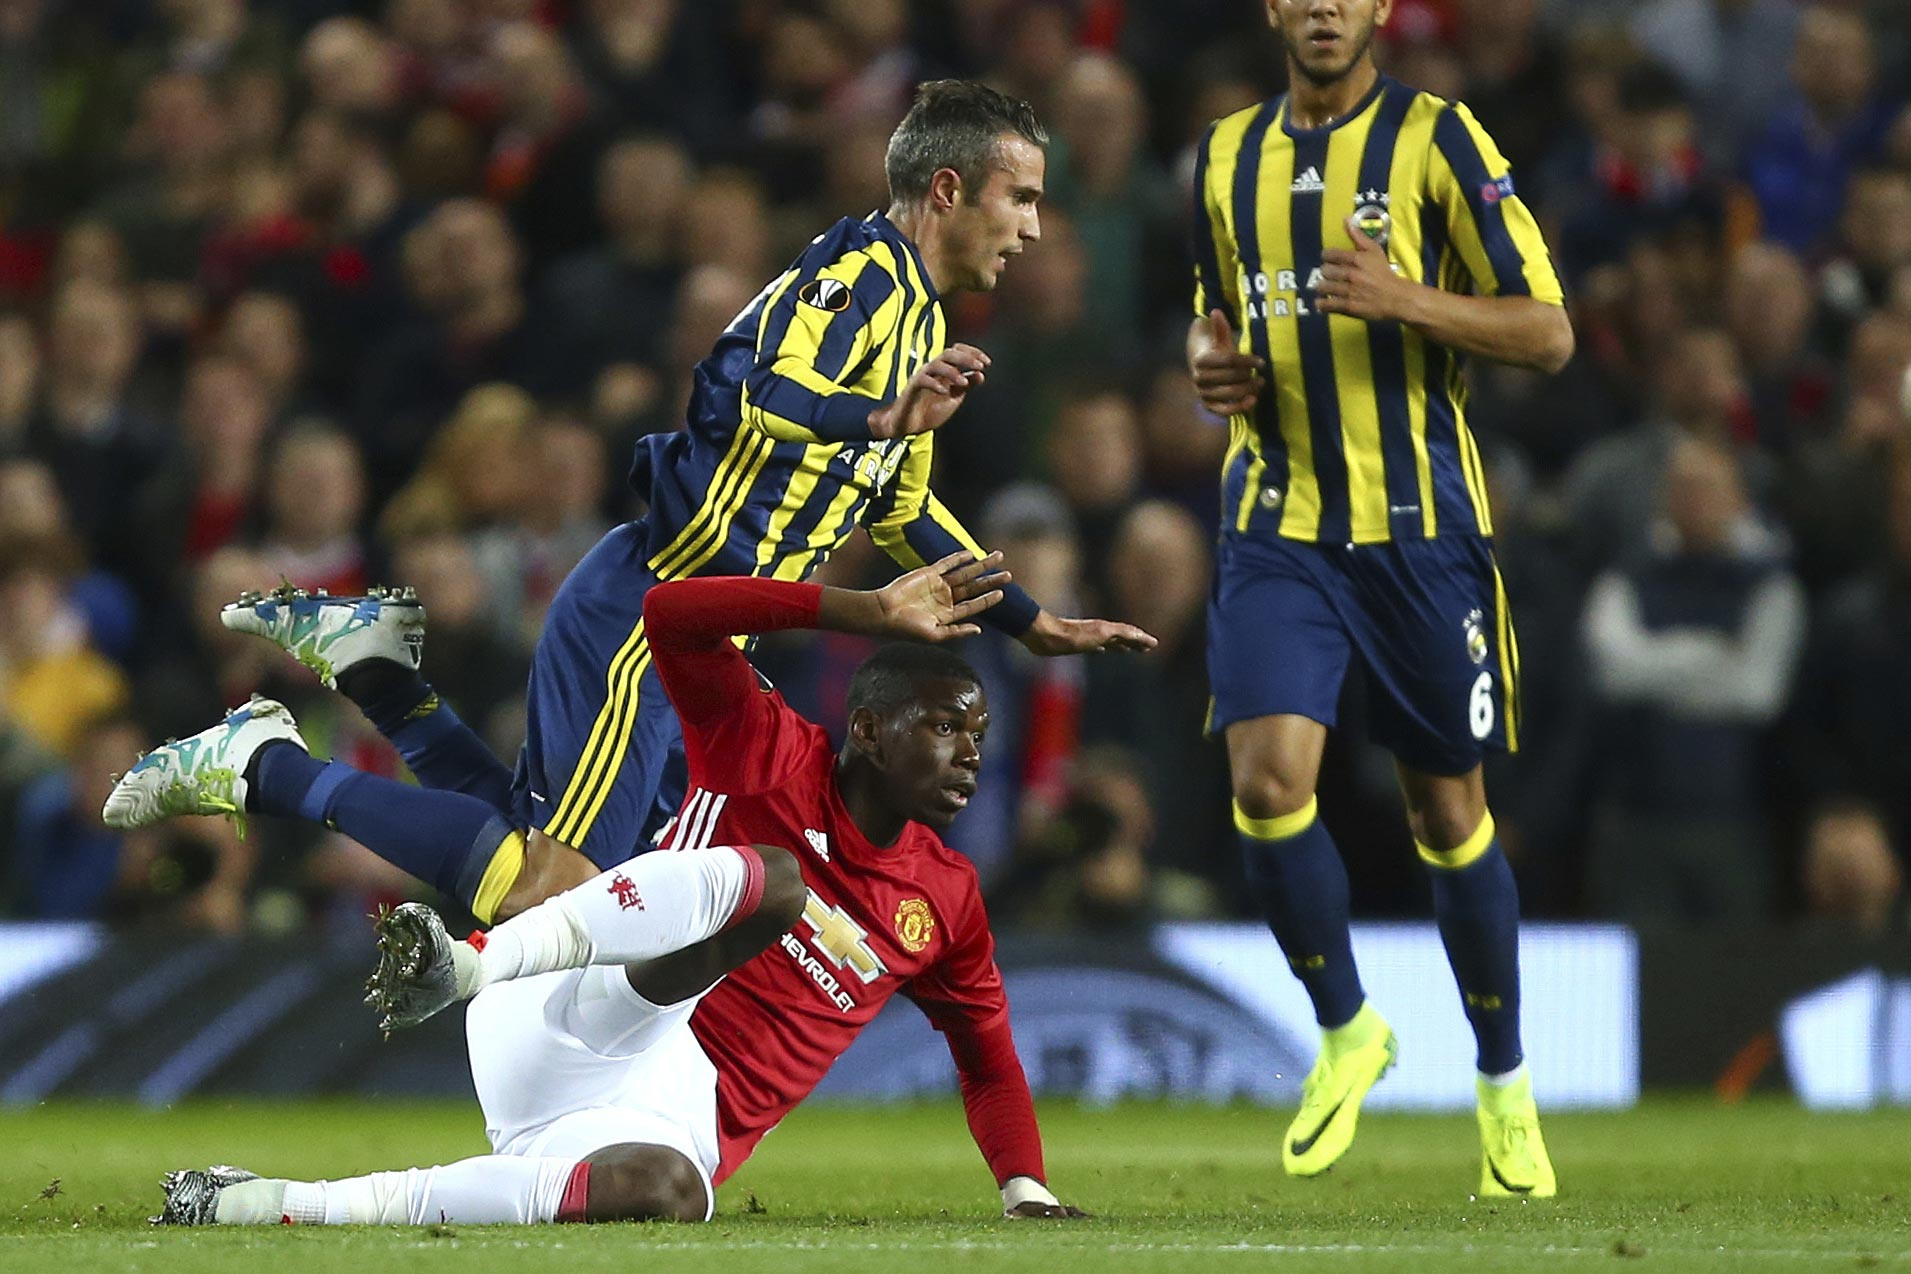 Paul Pogba nets brace as Manchester United romps over Fenerbahce in Europa League